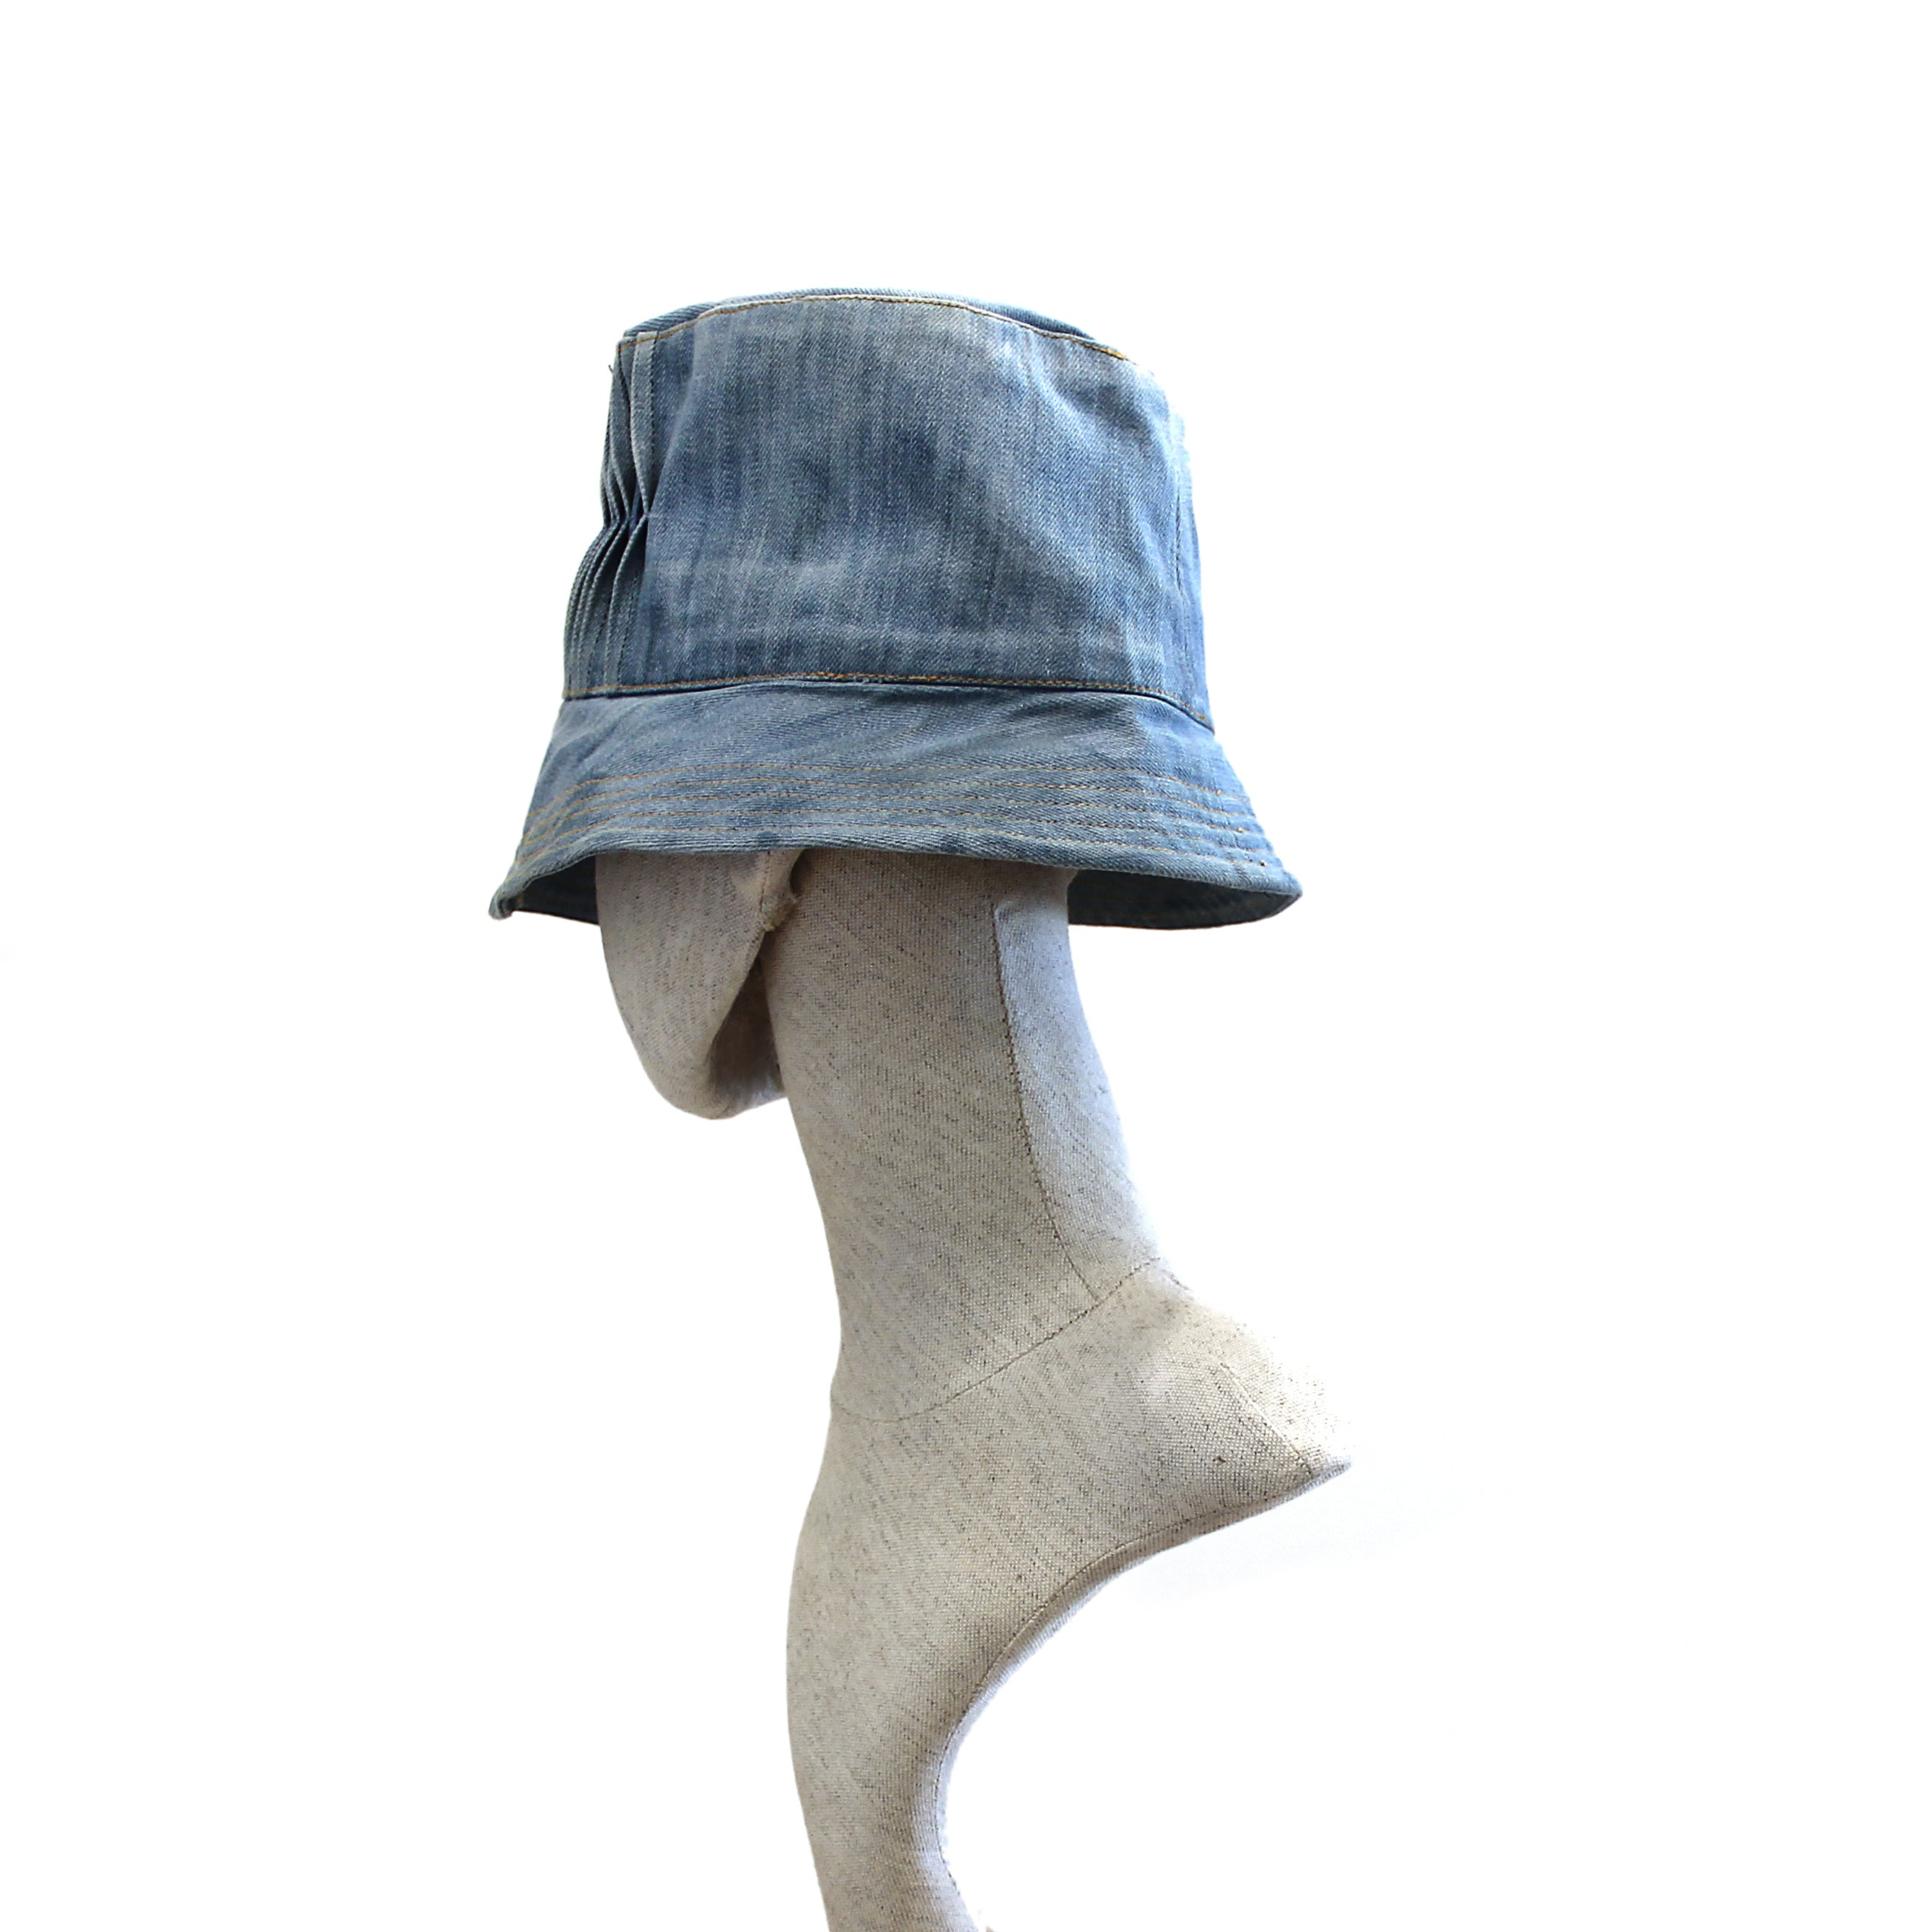 Bucket hat with Gills